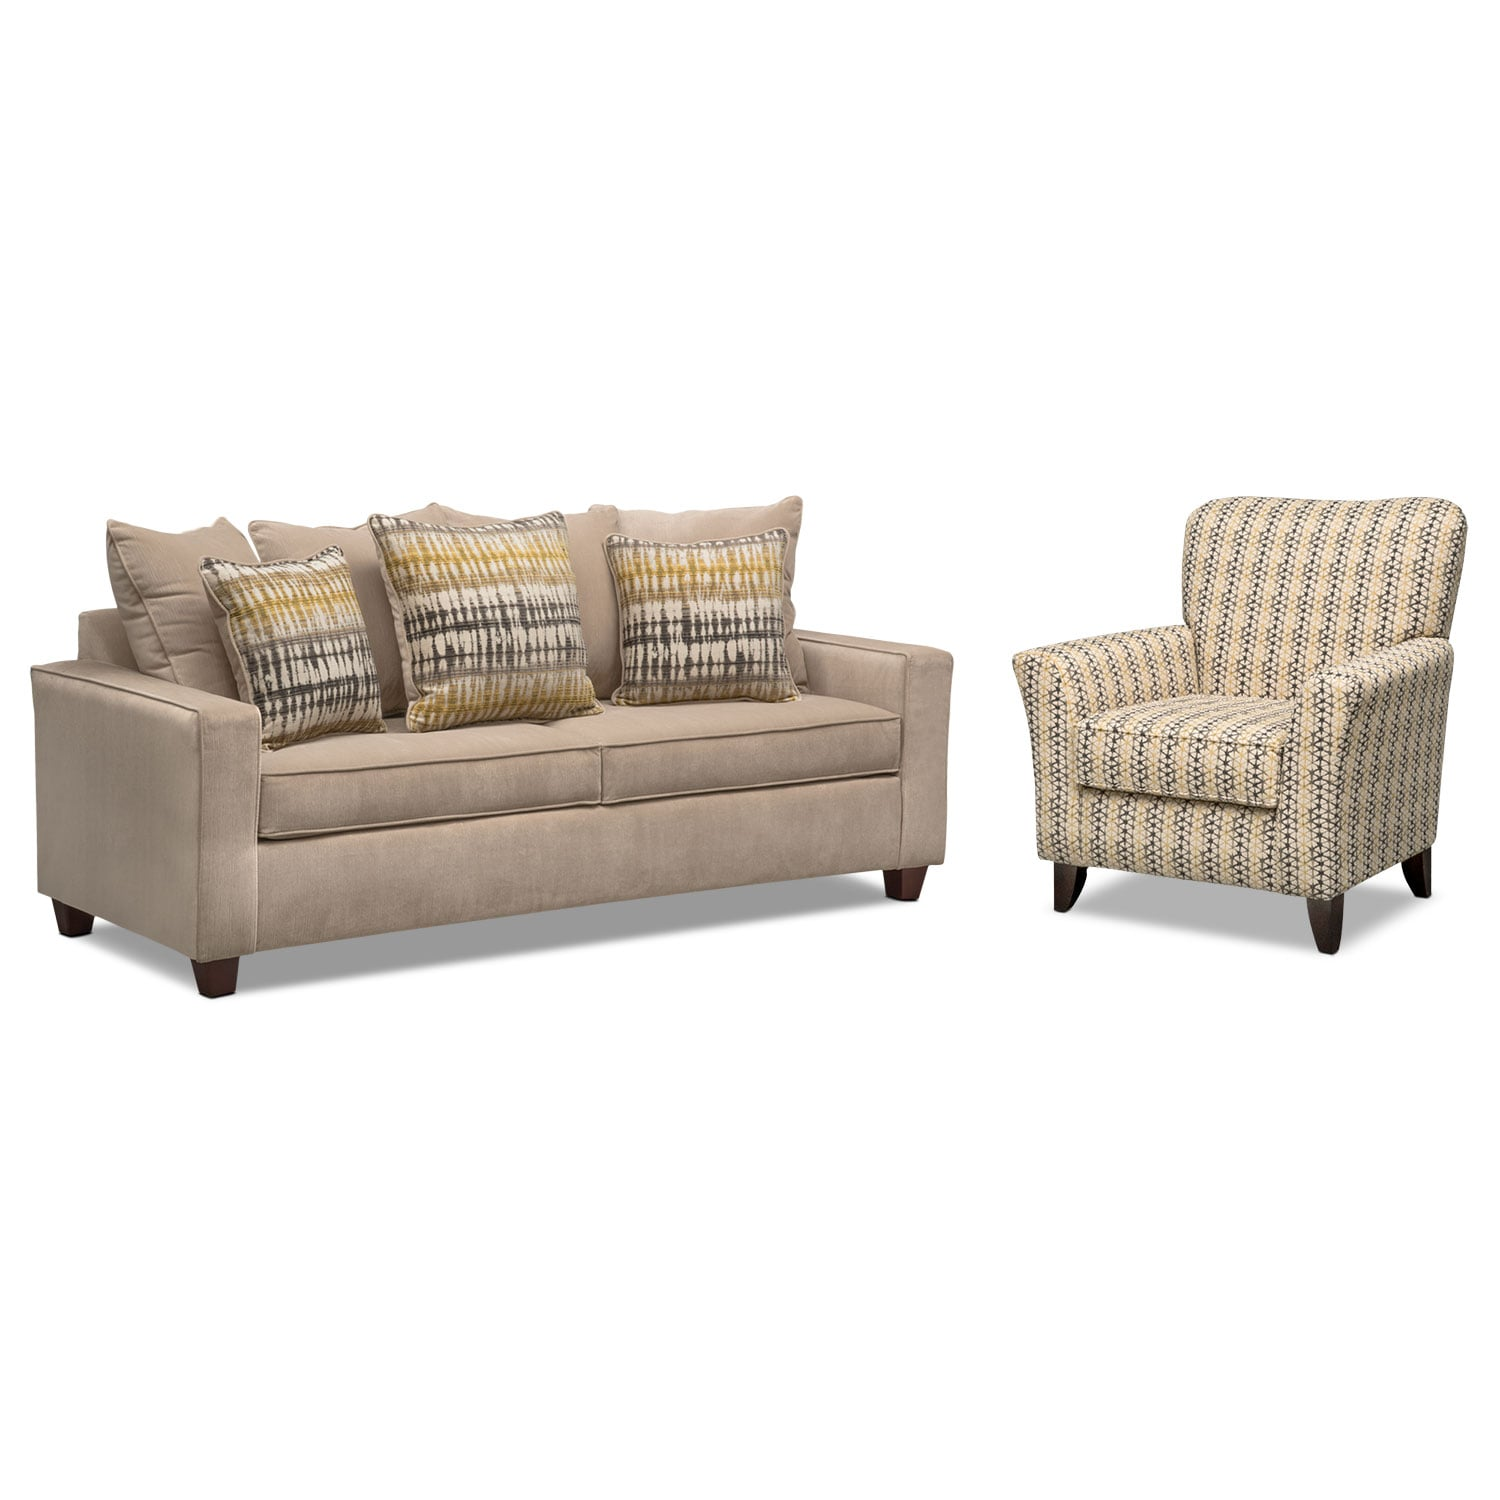 Living Room Furniture - Bryden Queen Innerspring Sleeper Sofa and Accent Chair Set - Beige